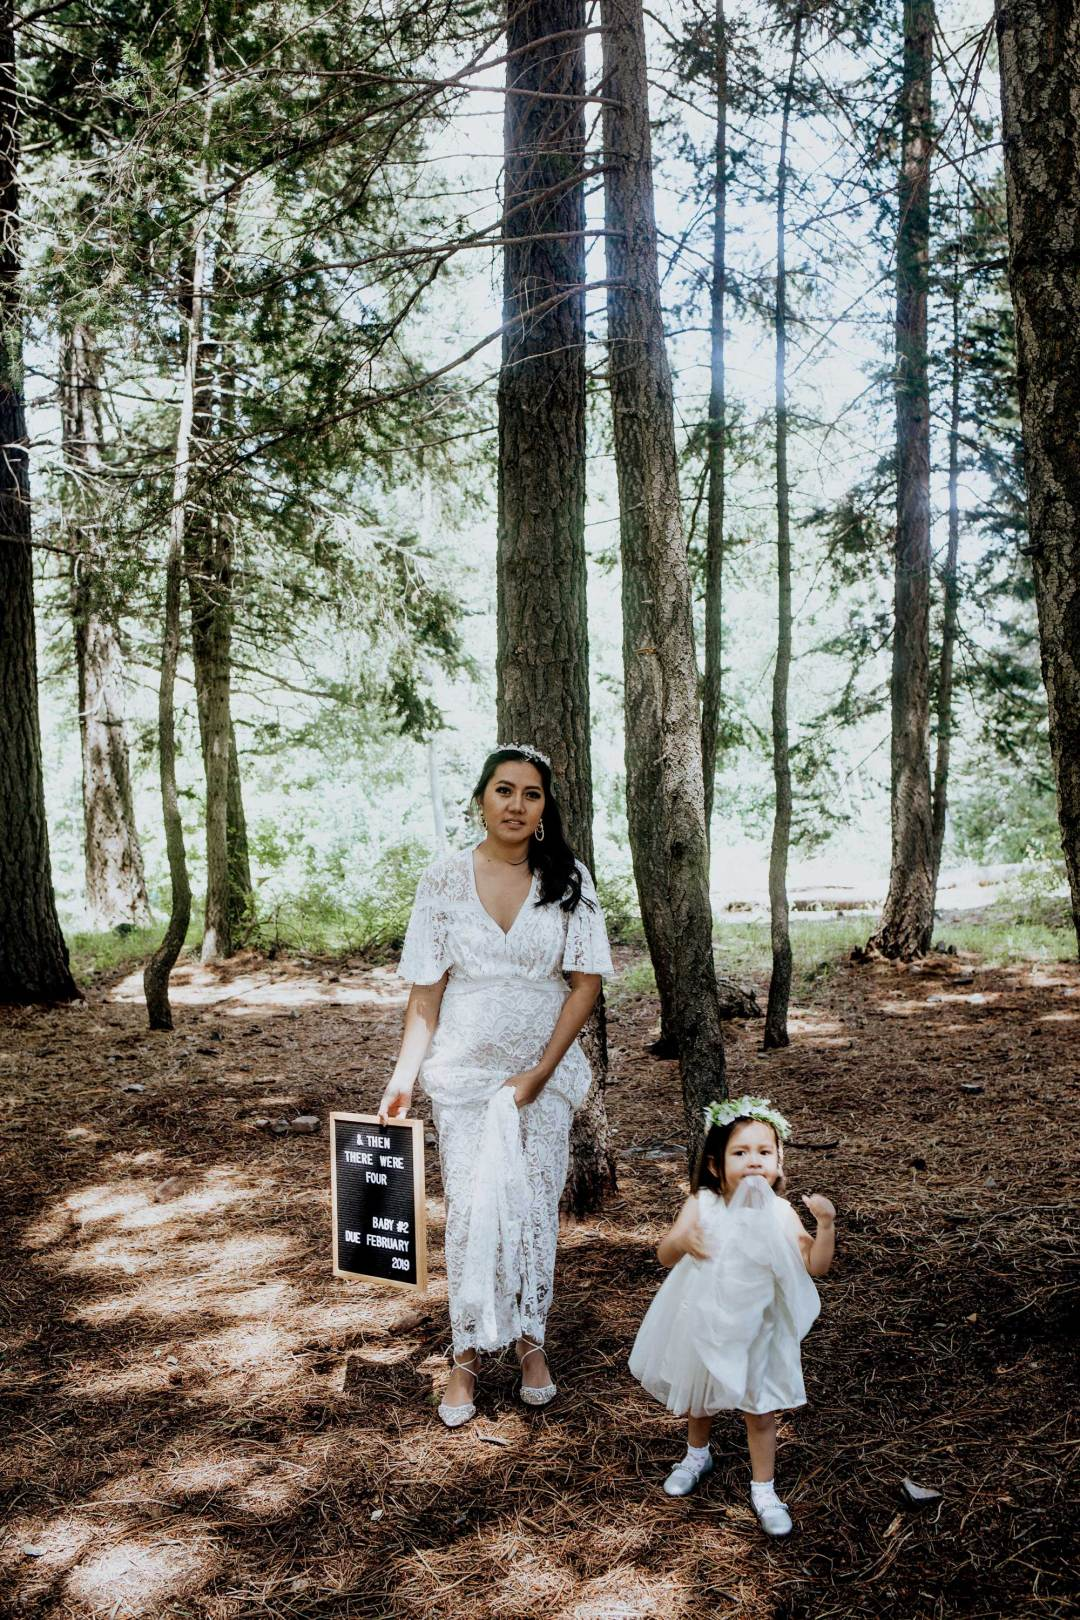 Pregnancy Announcement Baby Number 2_TheVibesCloset_Molly Larsen_Style Blogger_mom Blogger_Beauty Blogger_family picture_5